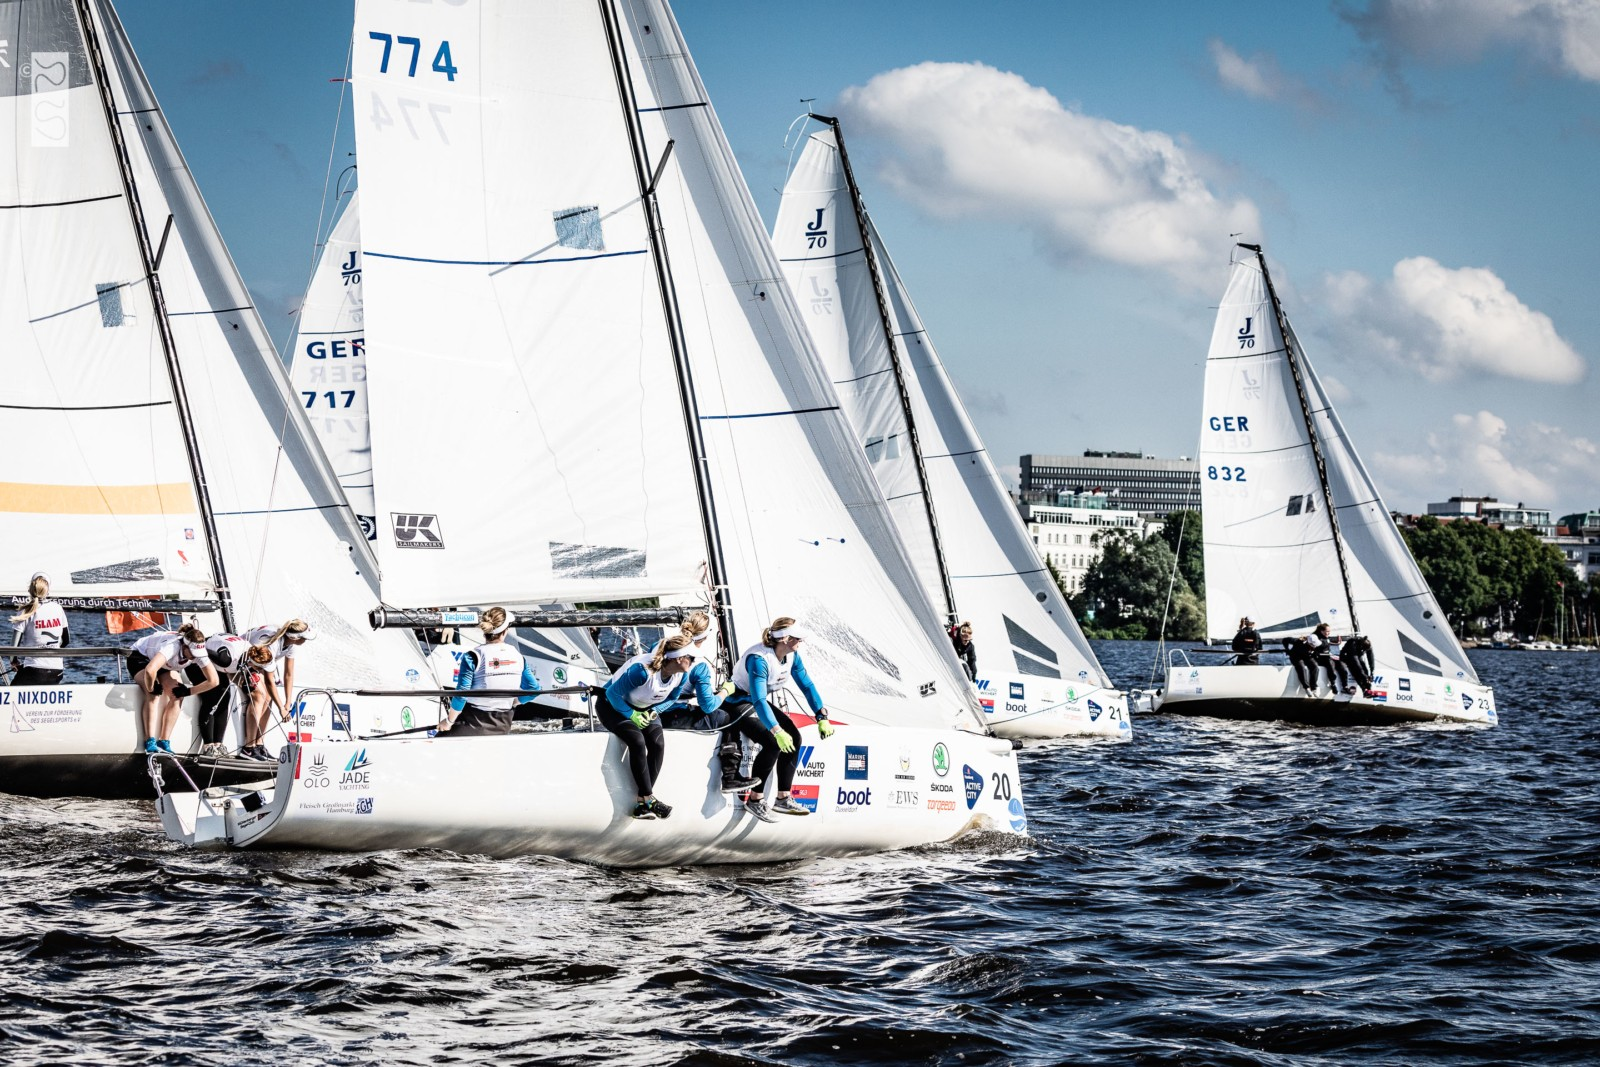 Helga Cup 2020 wird Quali-Event für Women's SAILING Champions League